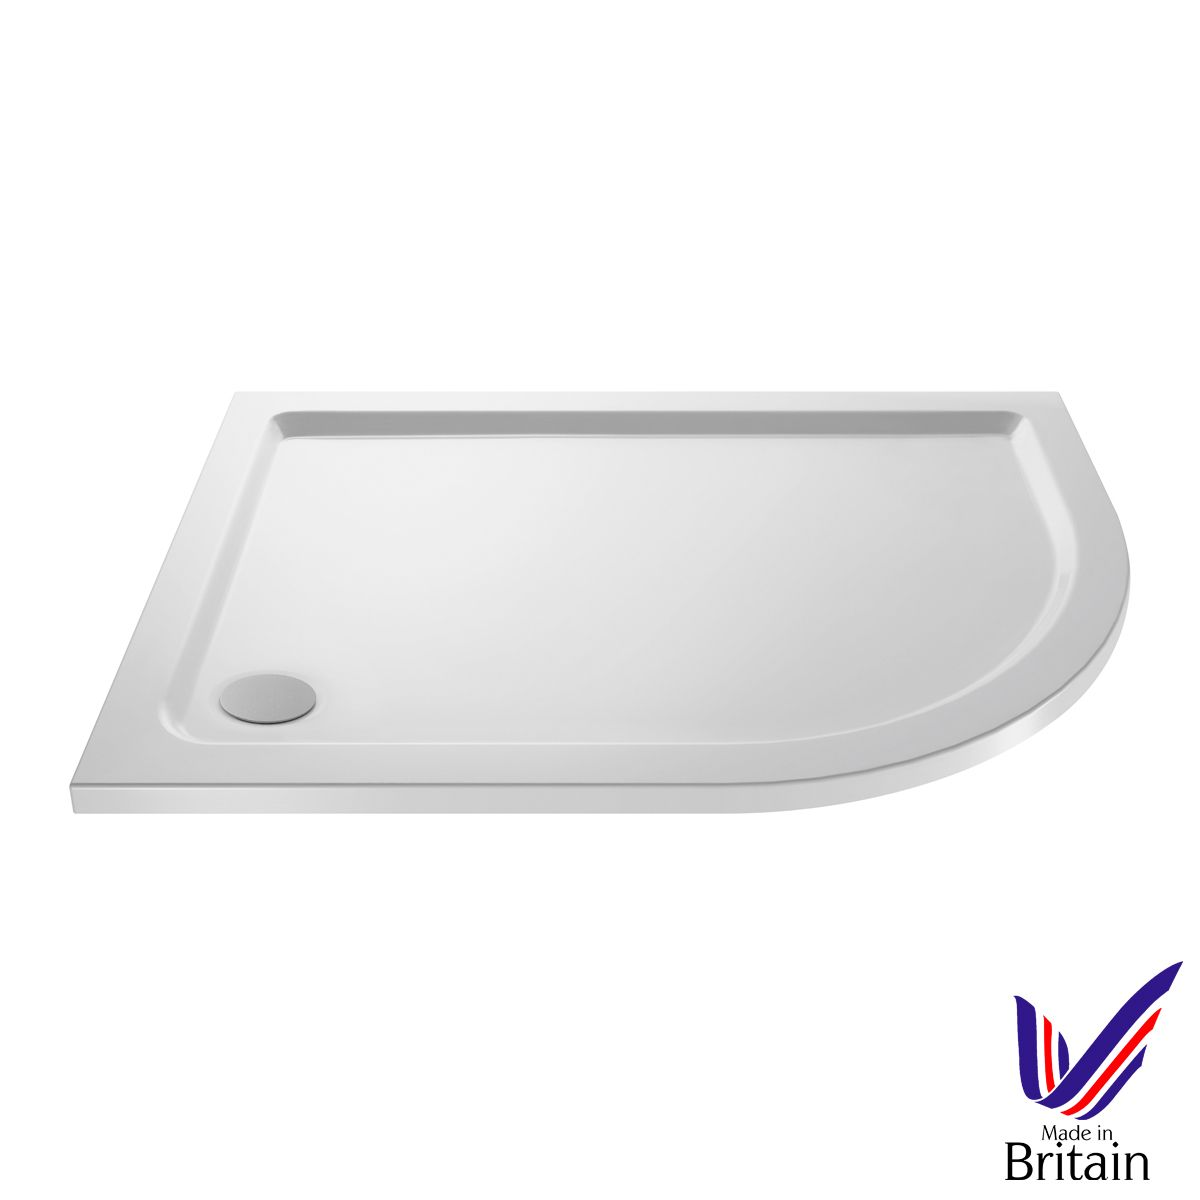 1200 x 900 Shower Tray Offset Quadrant Low Profile Right Hand by Pearlstone